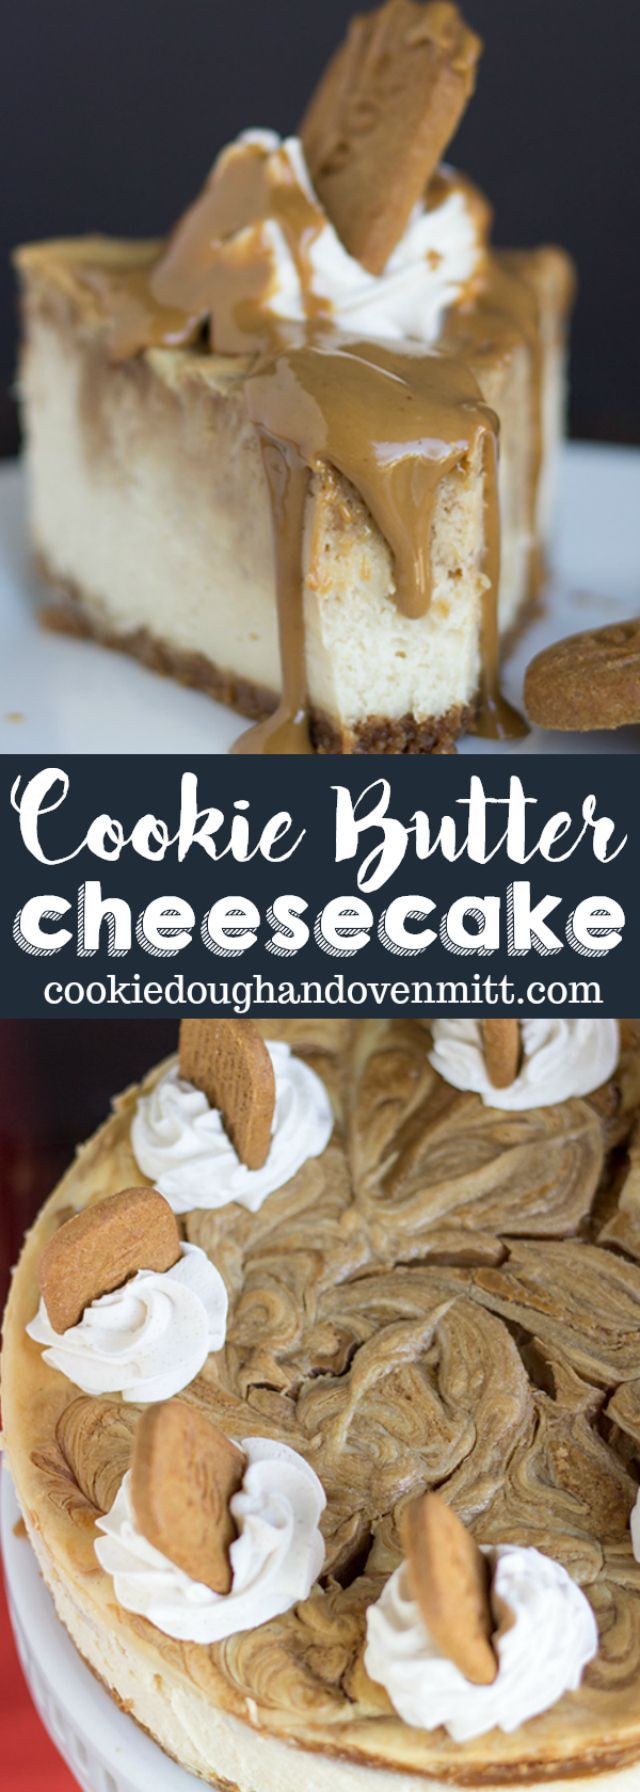 Cookie Butter Cheesecake - thick and creamy cookie butter cheesecake with gorgeous swirls of cookie butter on top and a speculoos cookie crust. This cheesecake is highly addicting! via @mmmirnanda